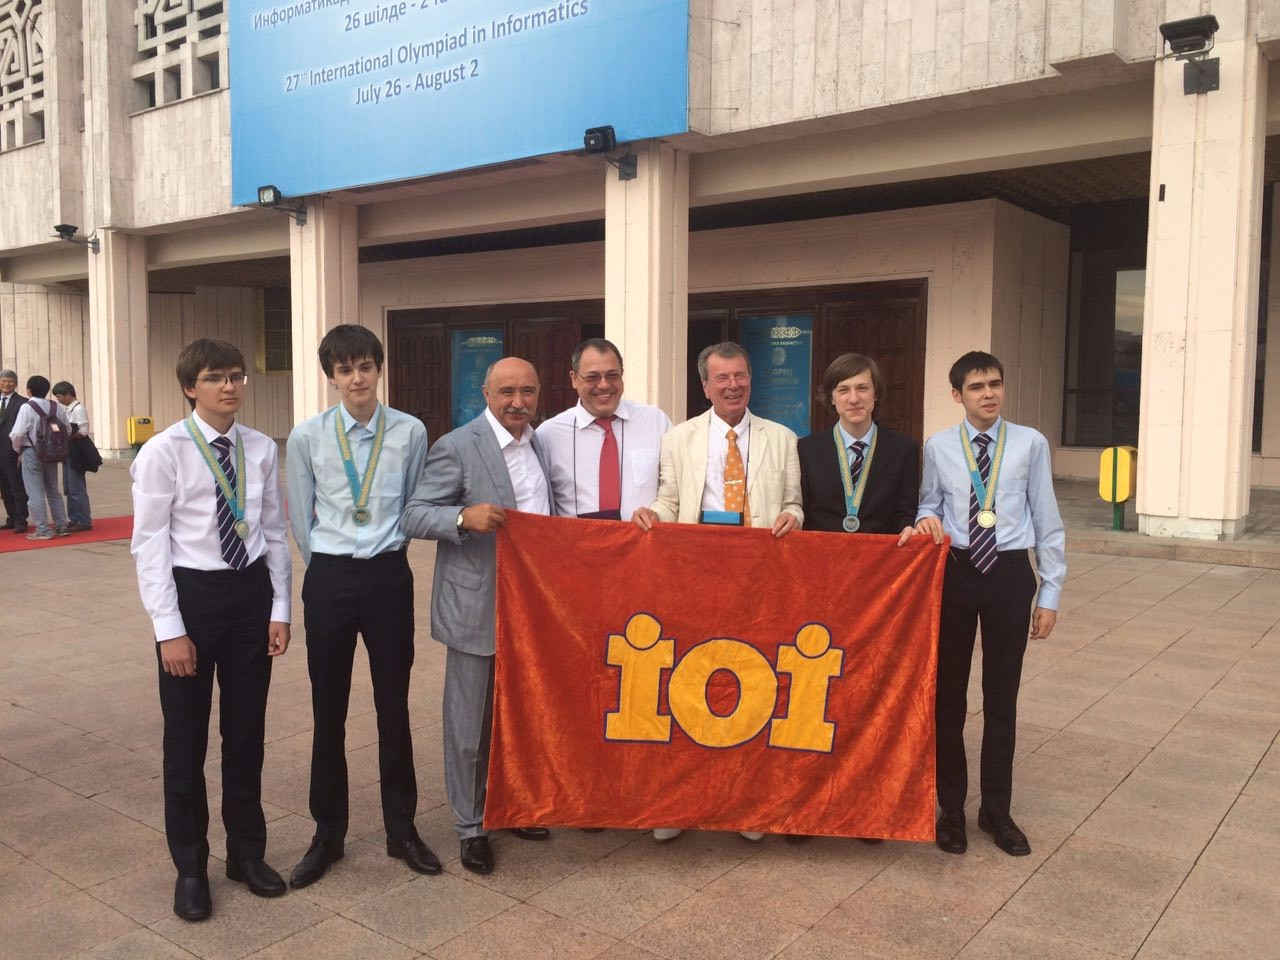 The flag of the International Olympiad in Informatics was passed to Kazan